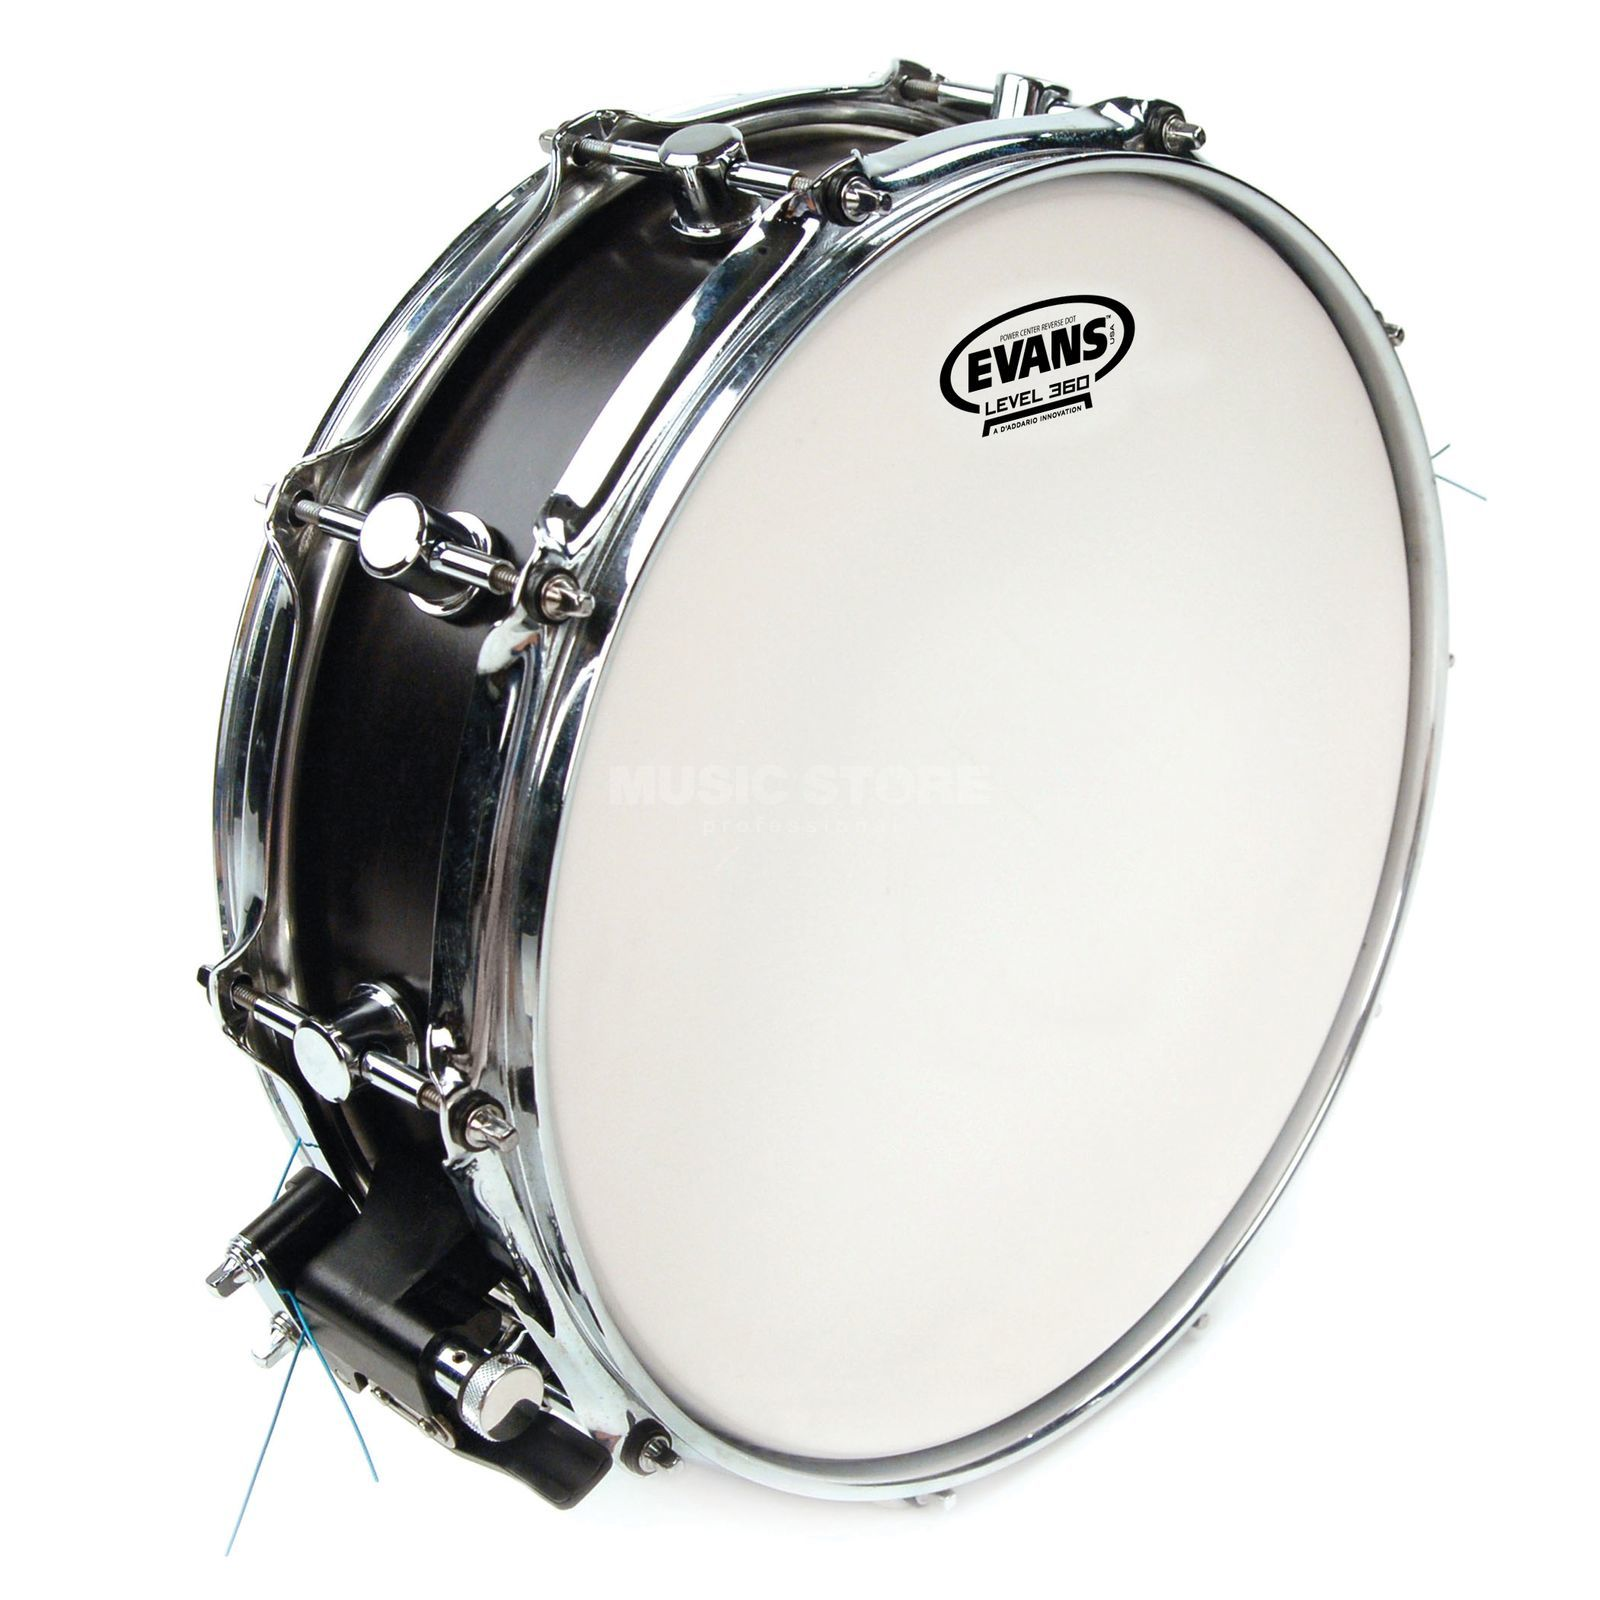 "Evans Power Center 12"", B12G1RD, Reverse Dot, Snare Batter Zdjęcie produktu"